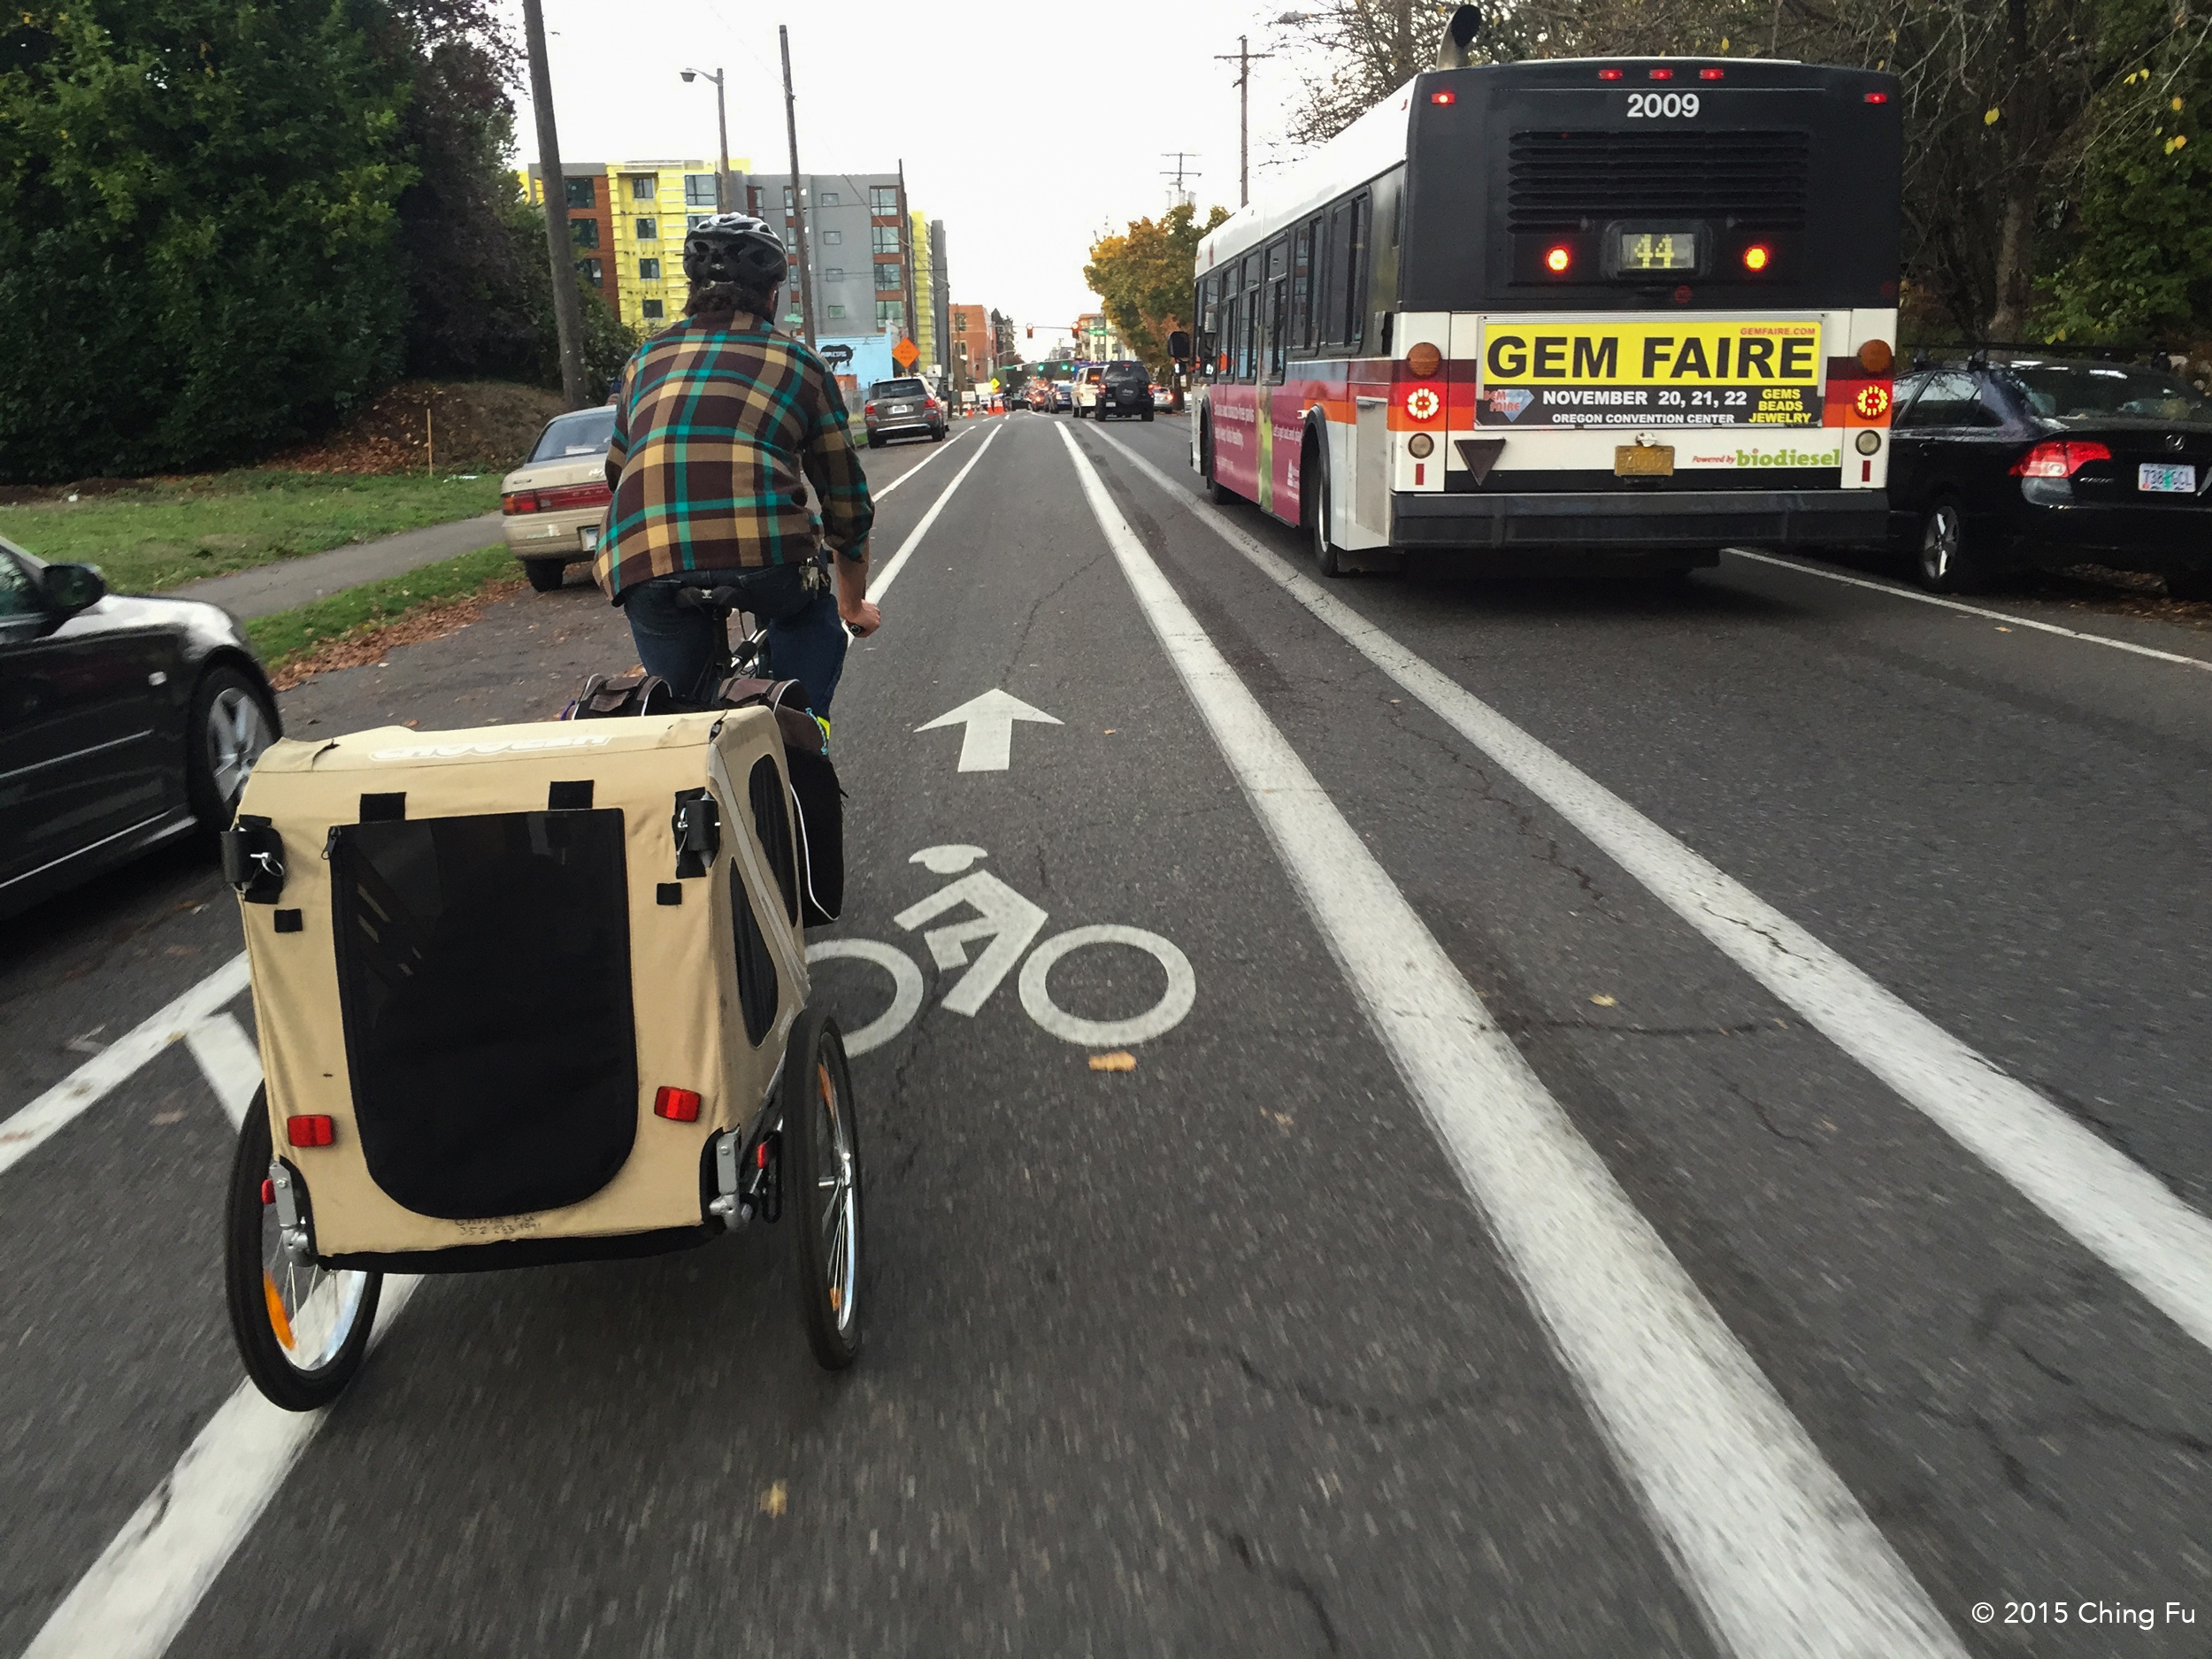 Another shot of Portland's bike lane.